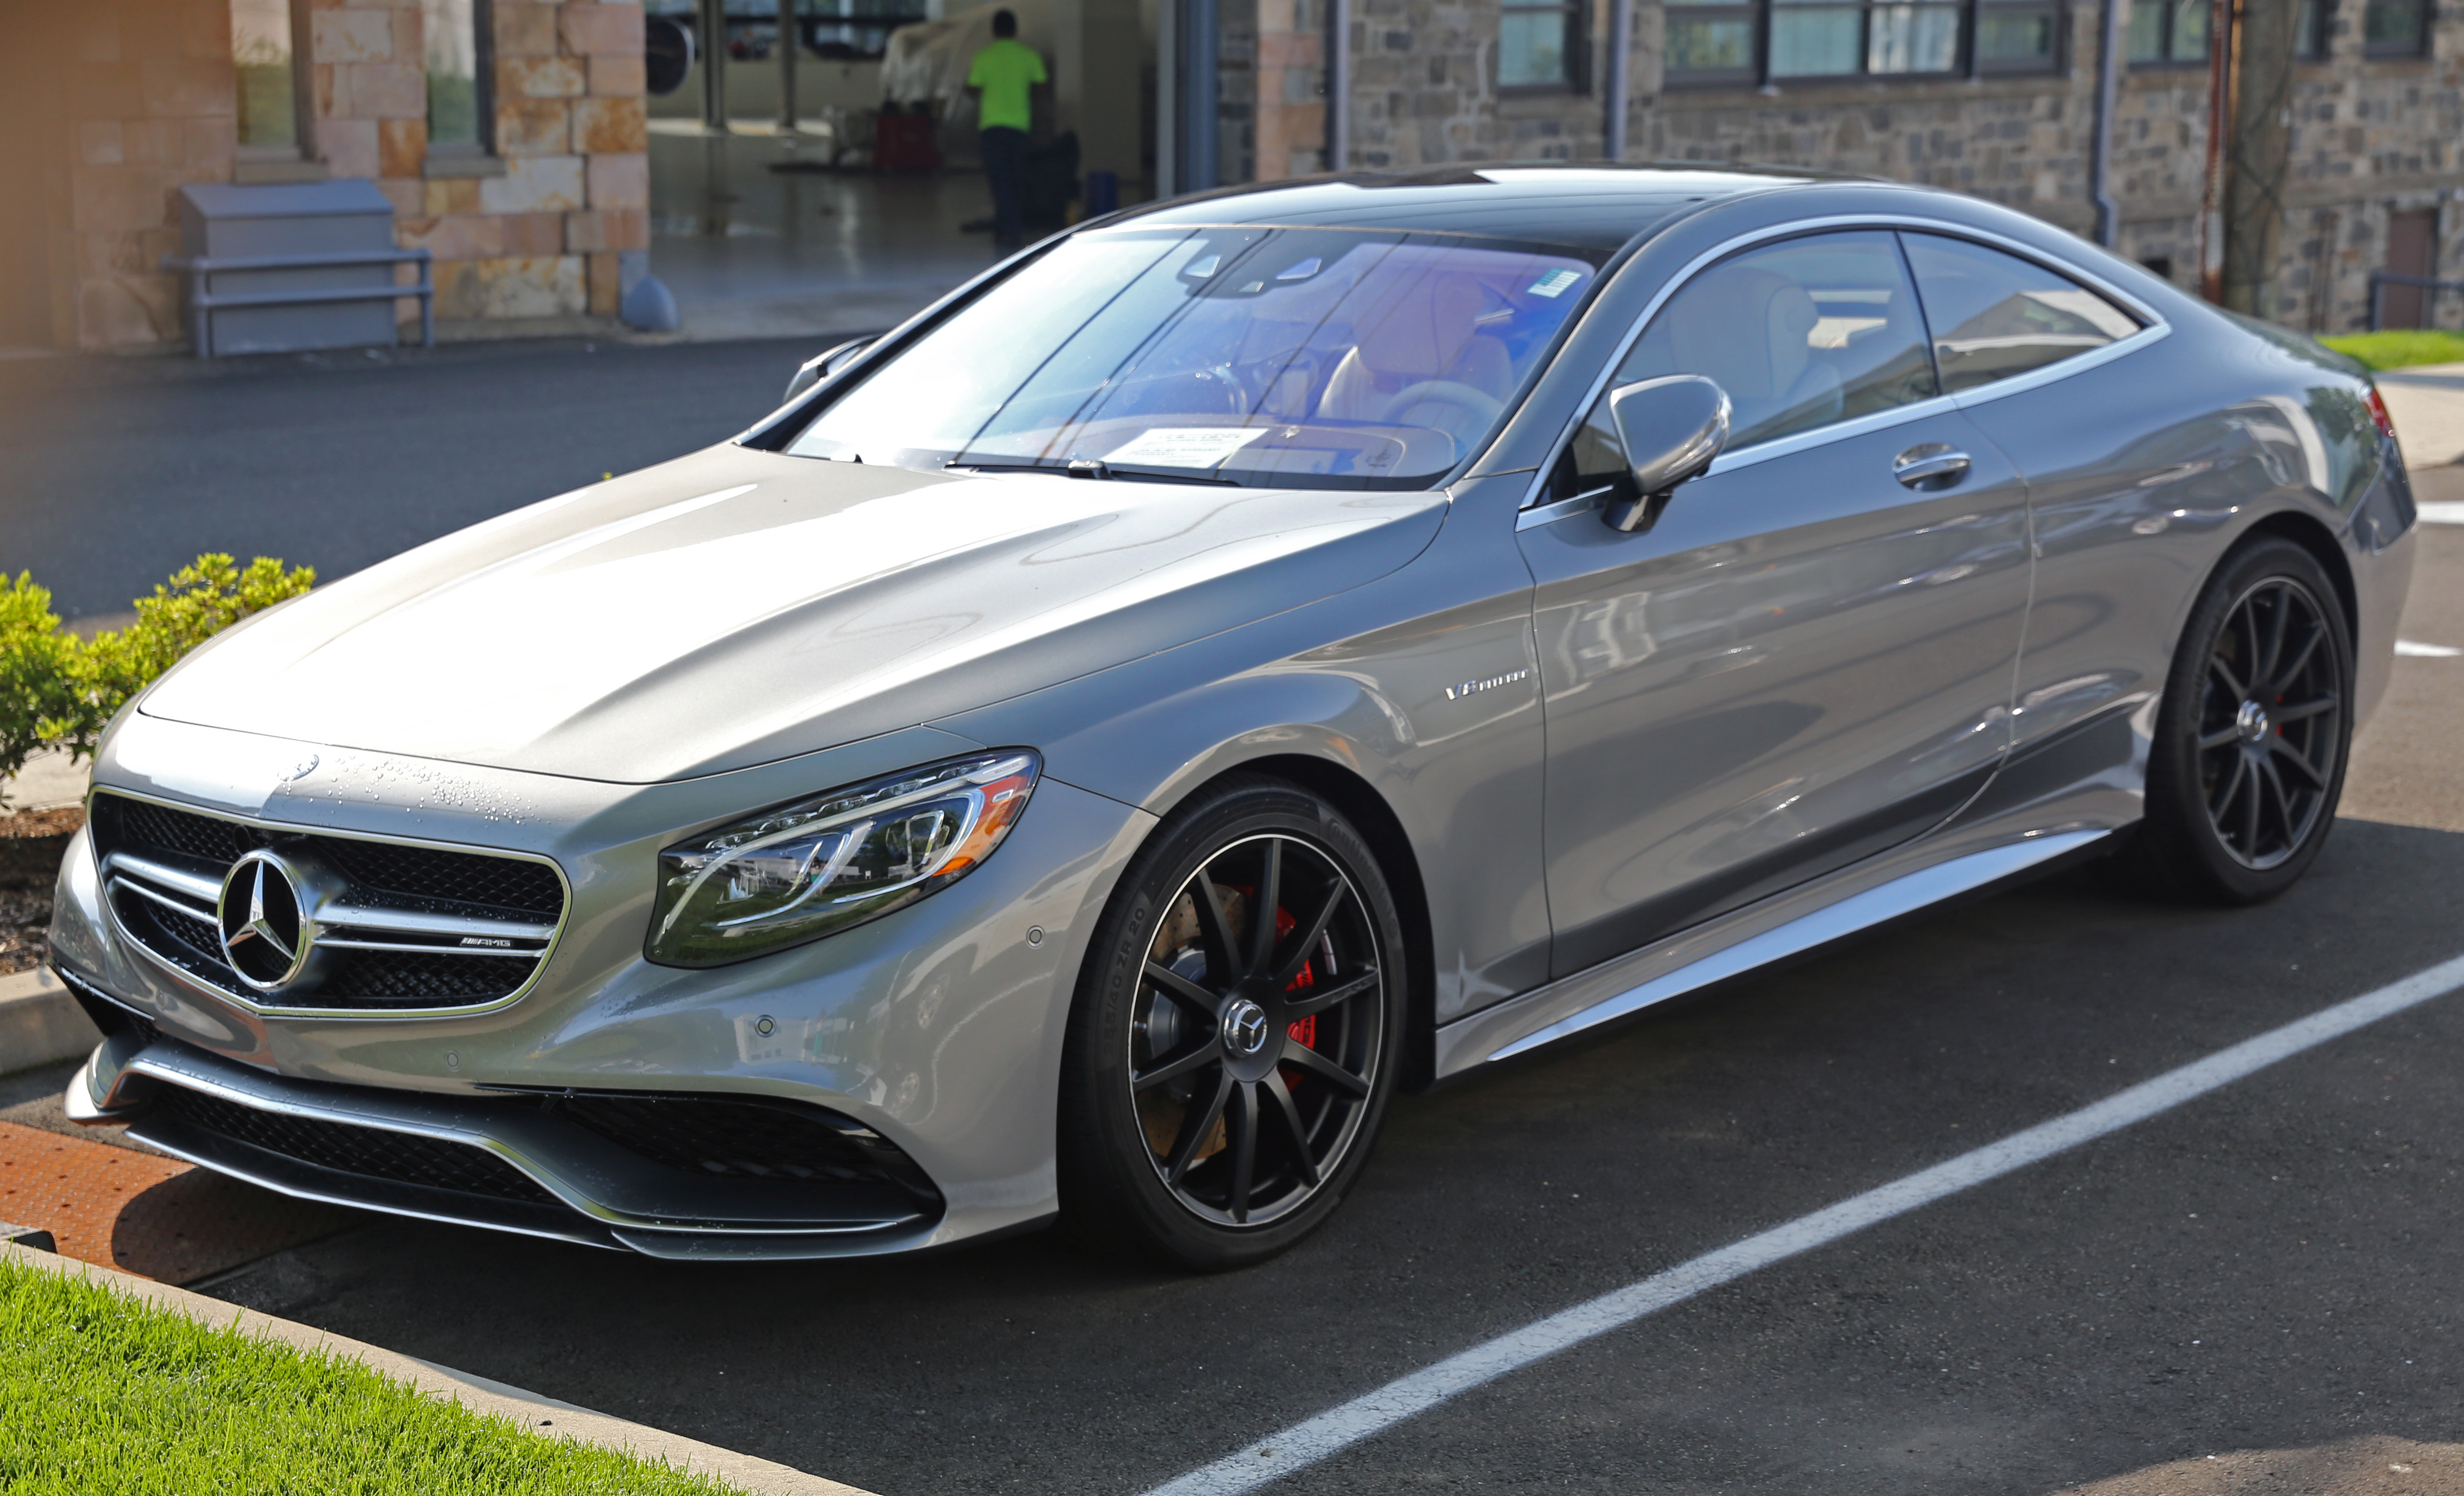 File:2015 Mercedes-Benz S63 AMG Coupé, front left (US).jpg - Wikimedia Commons